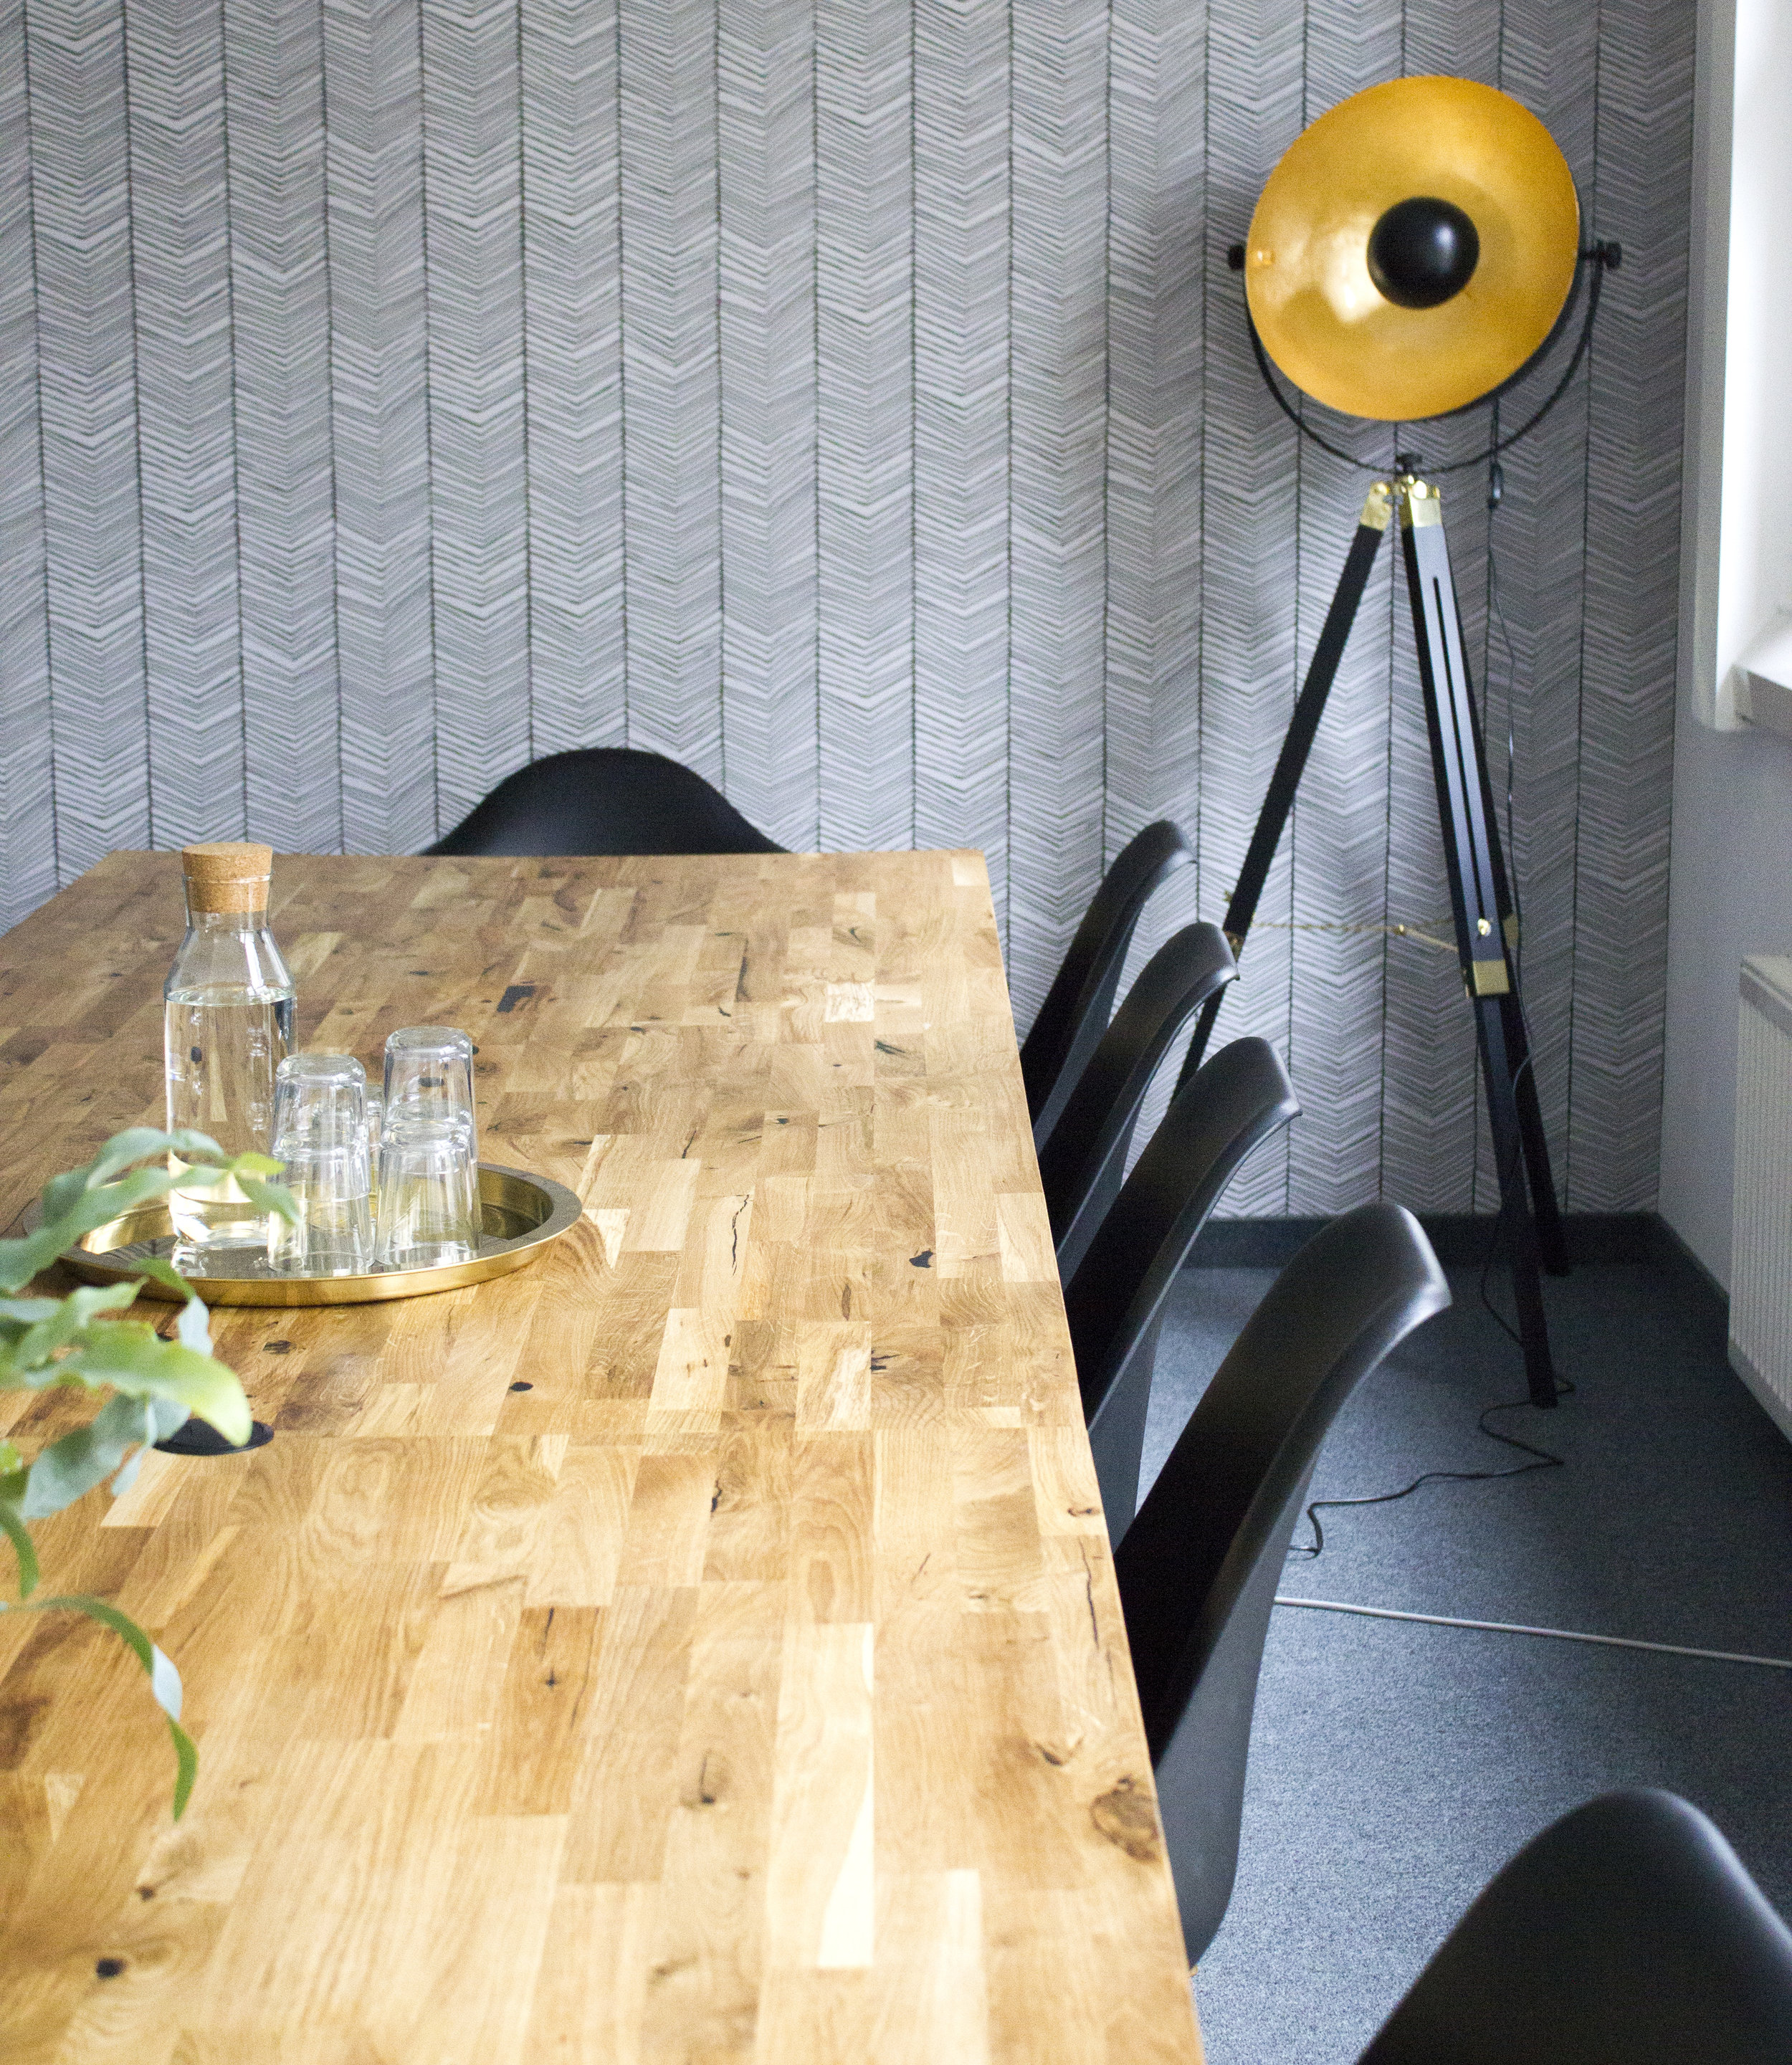 OAK TABLES - Made to size